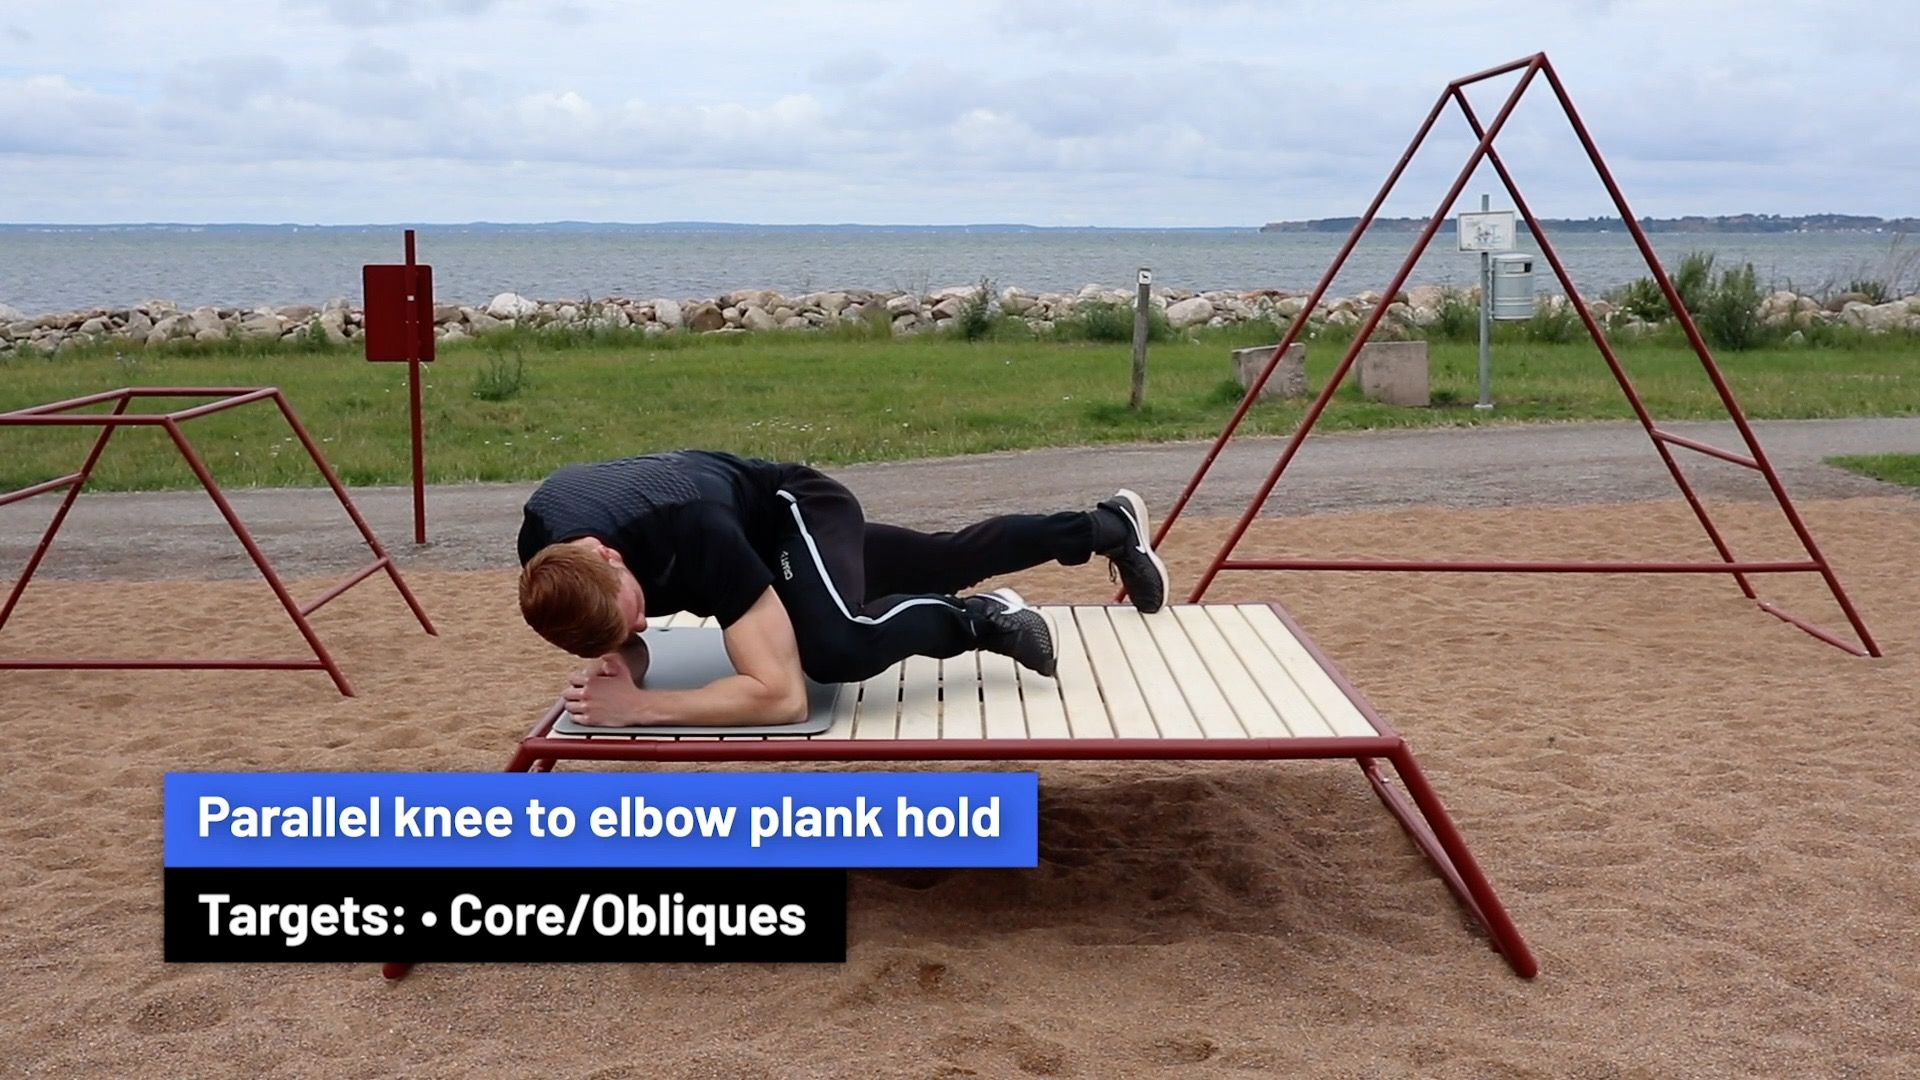 Parallel knee to elbow plank hold